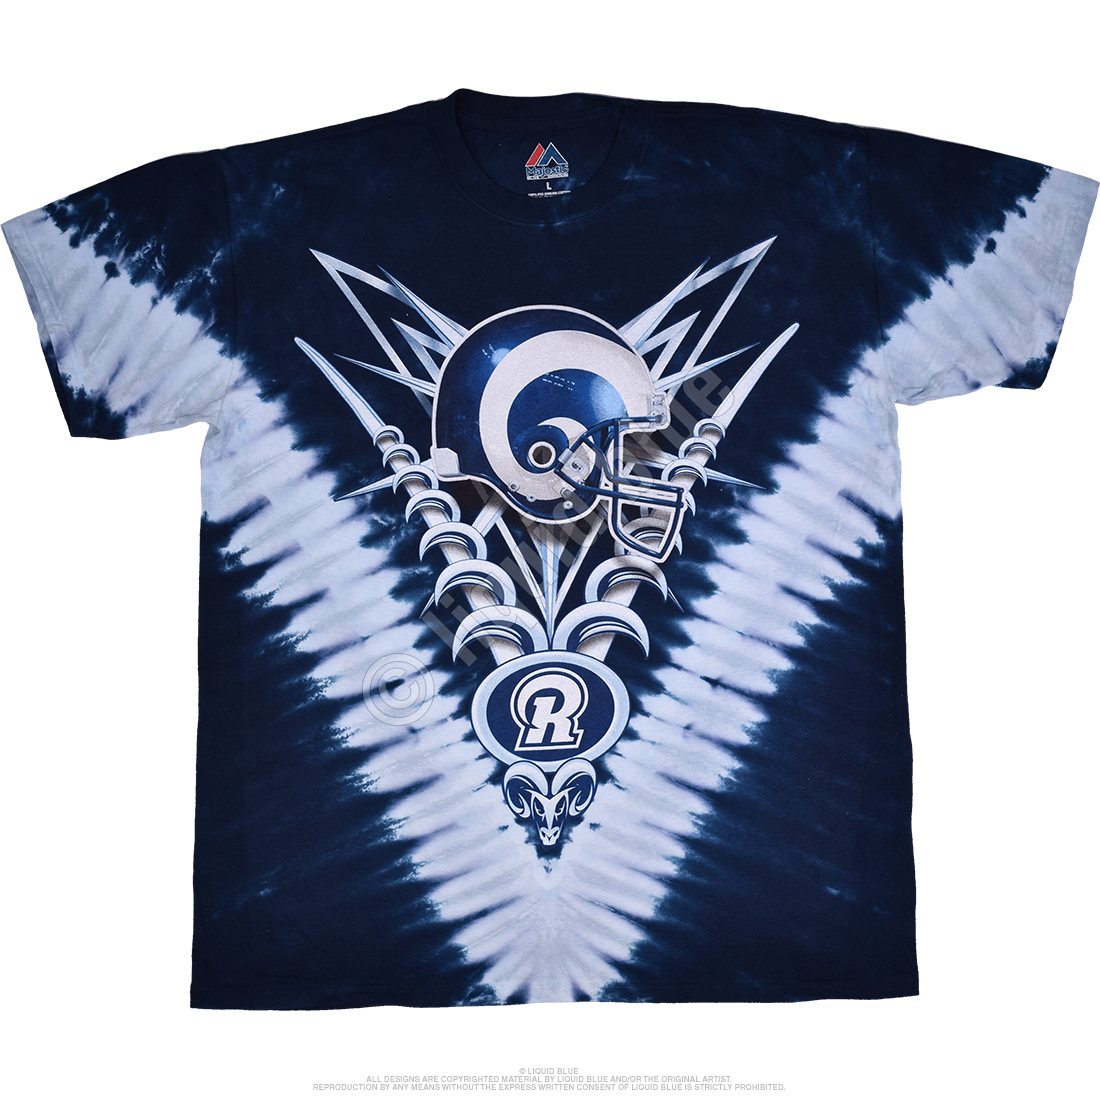 NFL Los Angeles Rams V Tie Dye T Shirt Tee Liquid Blue